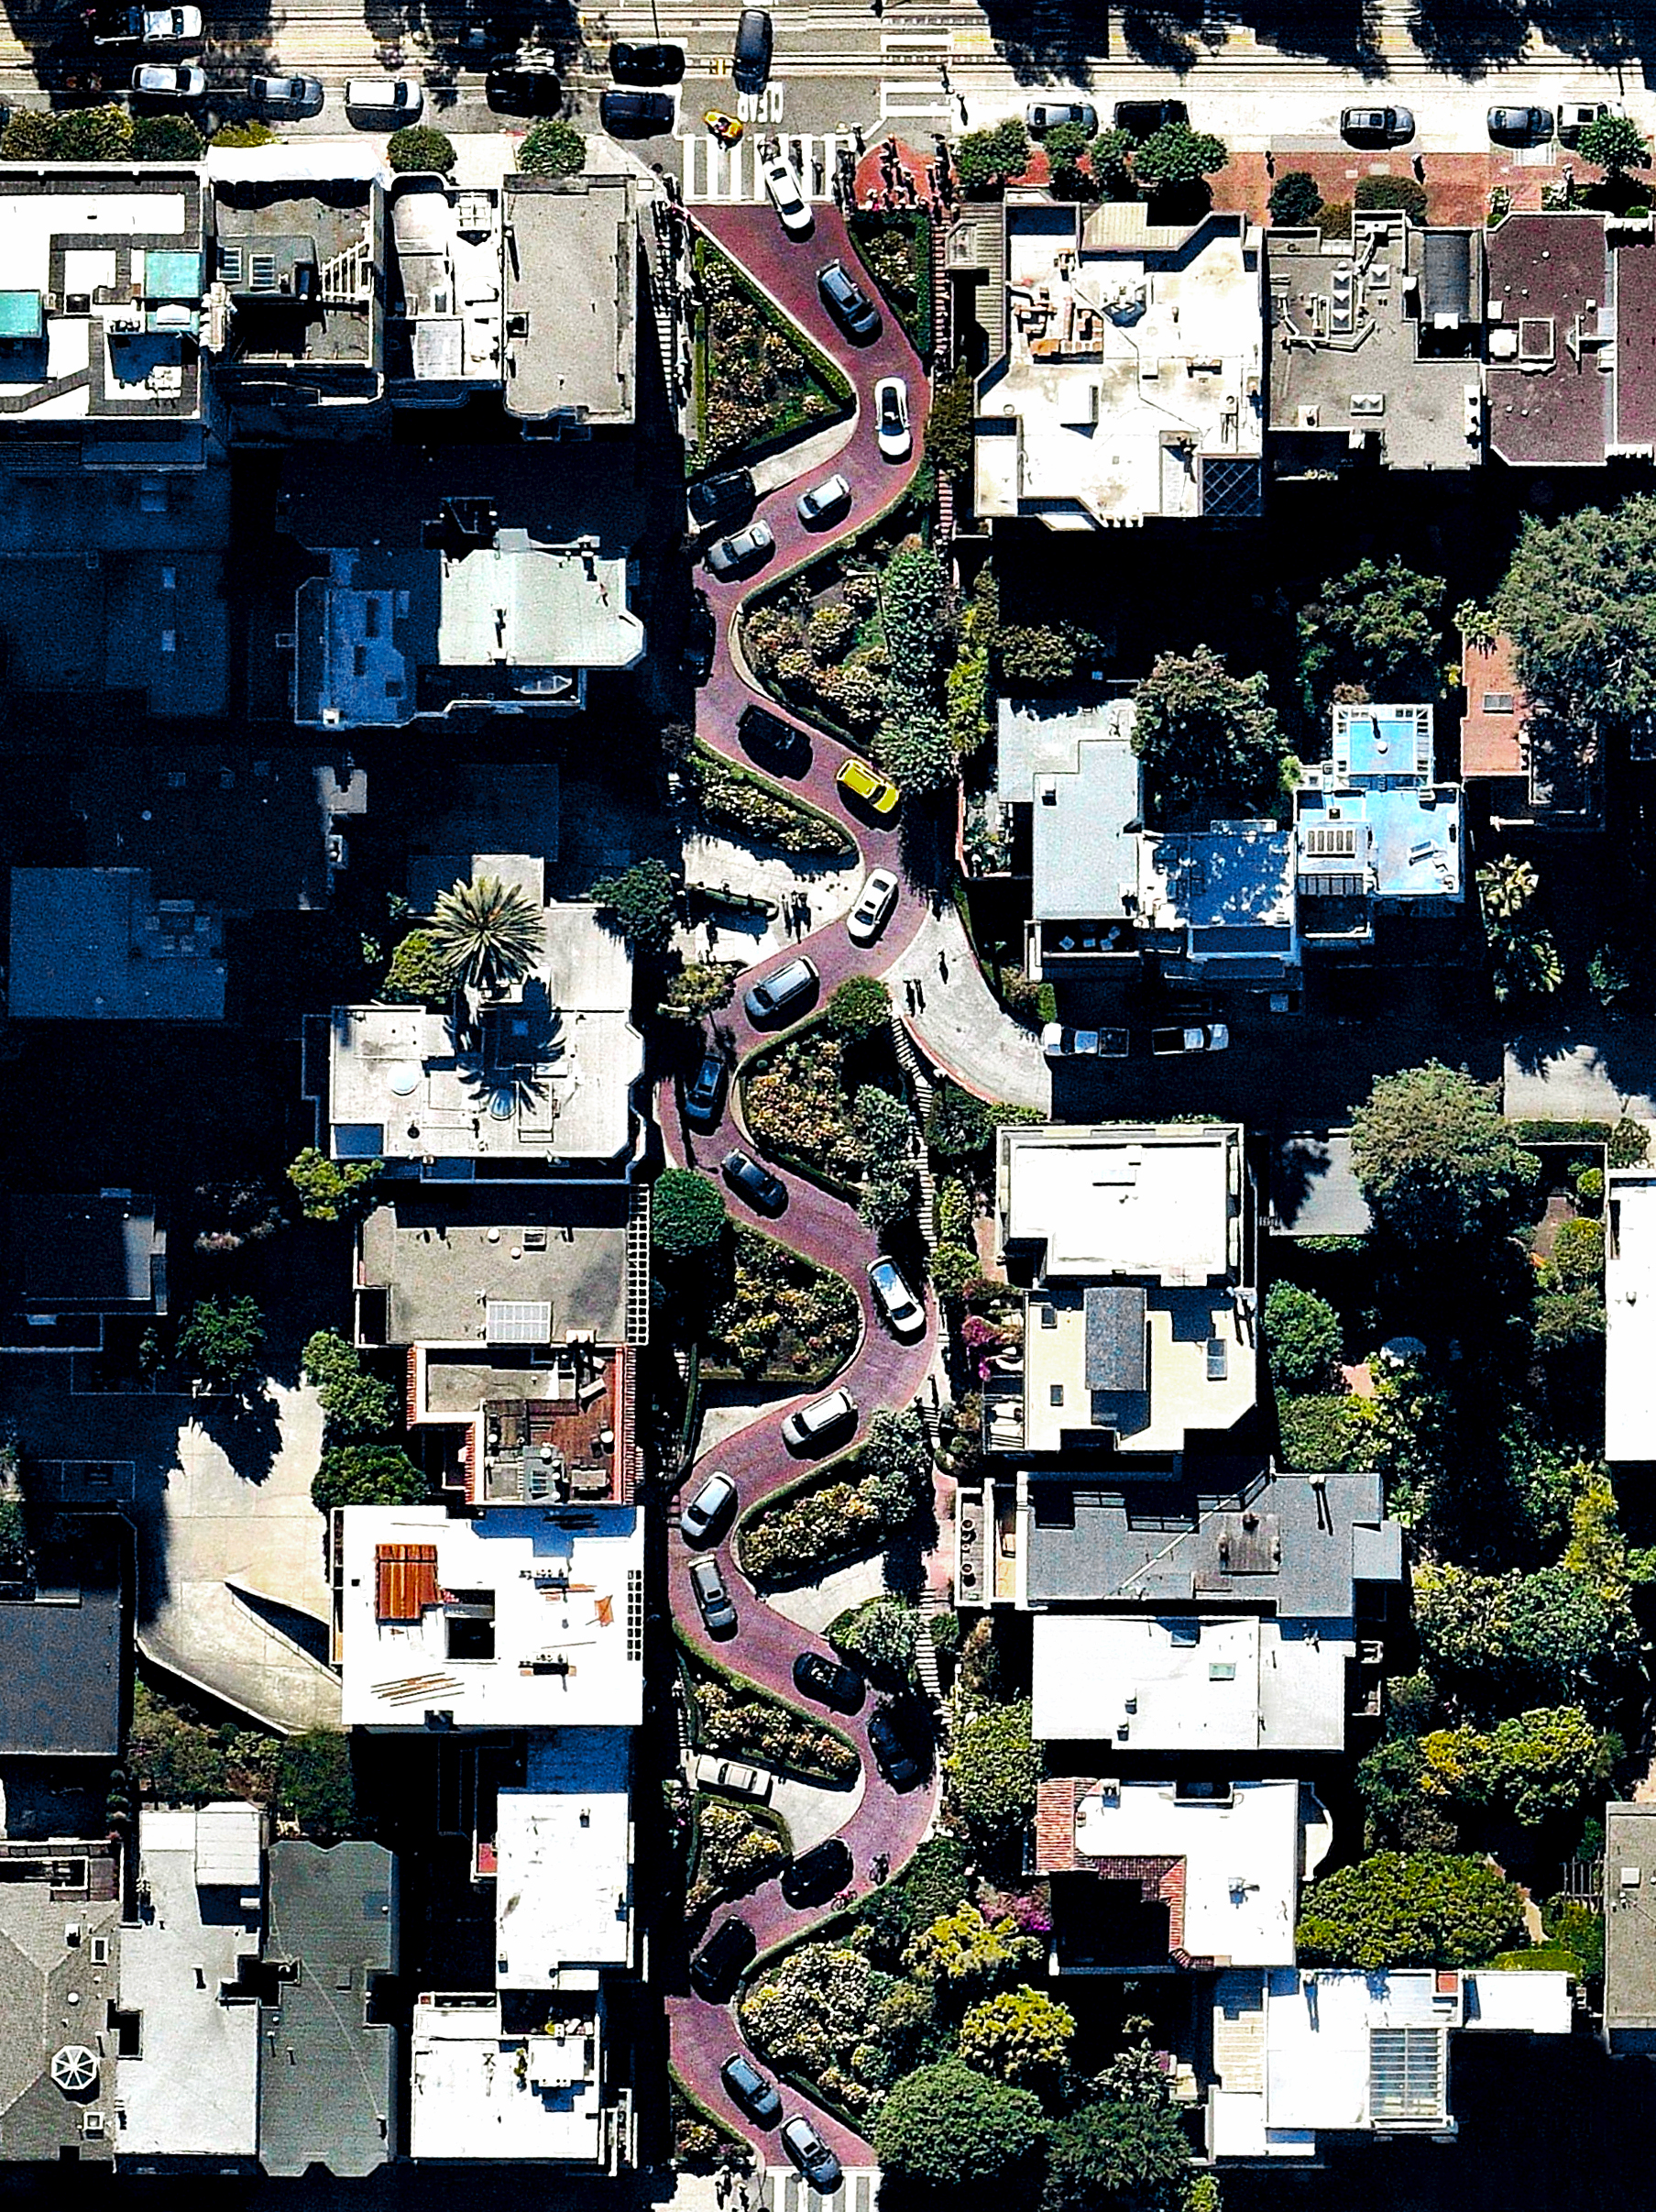 """Another 2017 favorite - Cars wind down the hill of Lombard Street, which runs from east to west in San Francisco, California, USA. With eight hairpin turns dispersed over a one-block section in the Russian Hill neighborhood, Lombard is often referred to as """"the most crooked street in the world.""""  37.8021829, -122.41921"""